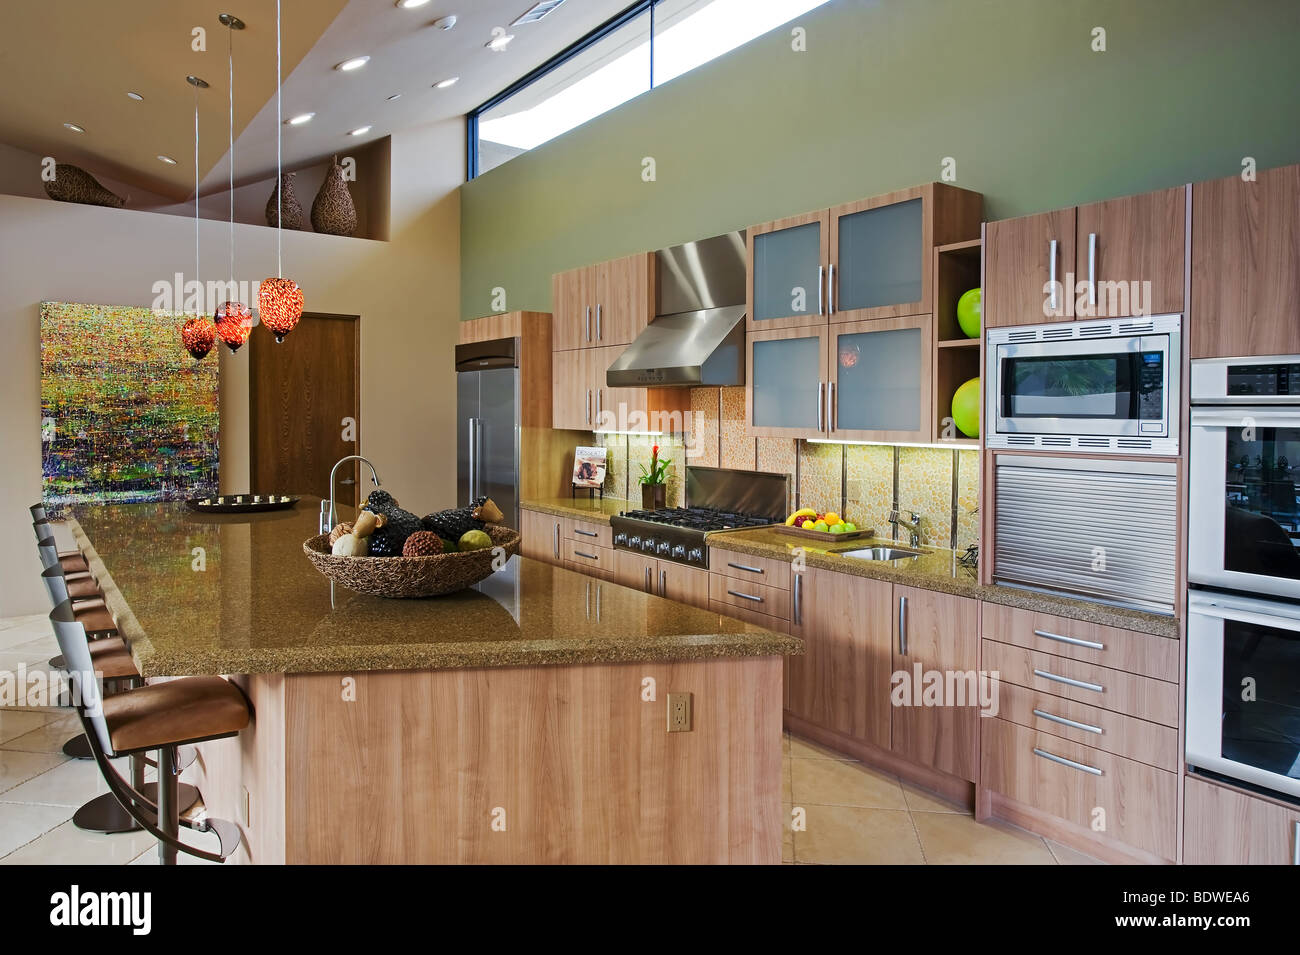 Modern Kitchens Stockfotos & Modern Kitchens Bilder - Alamy